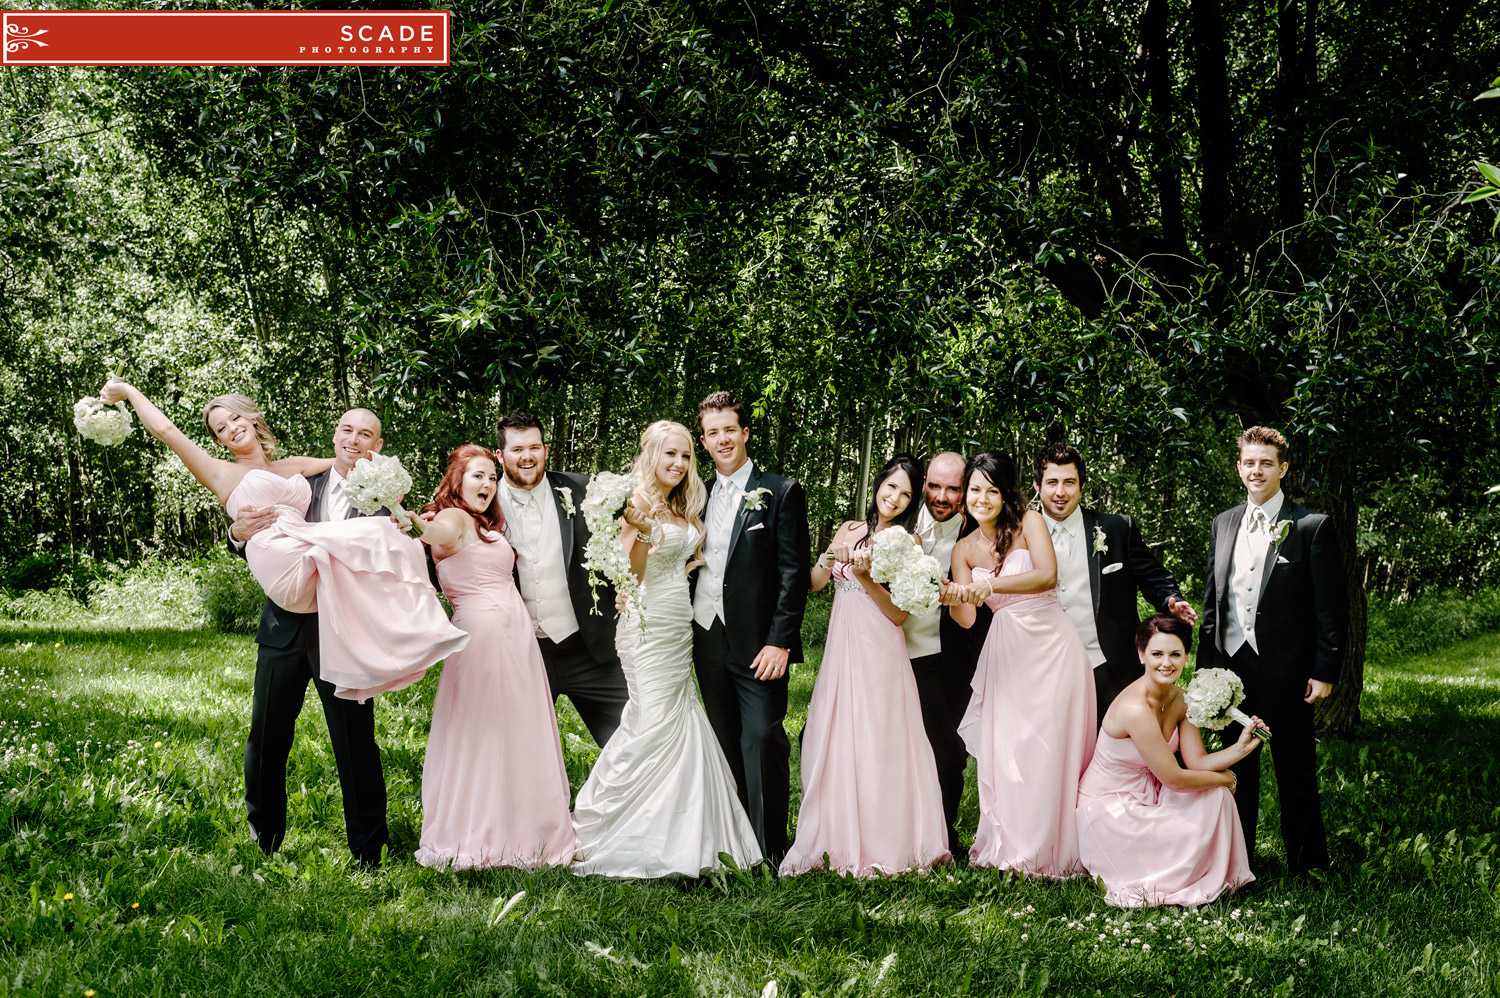 Lamont Wedding Photography - Brittney and Michael - 0018.JPG